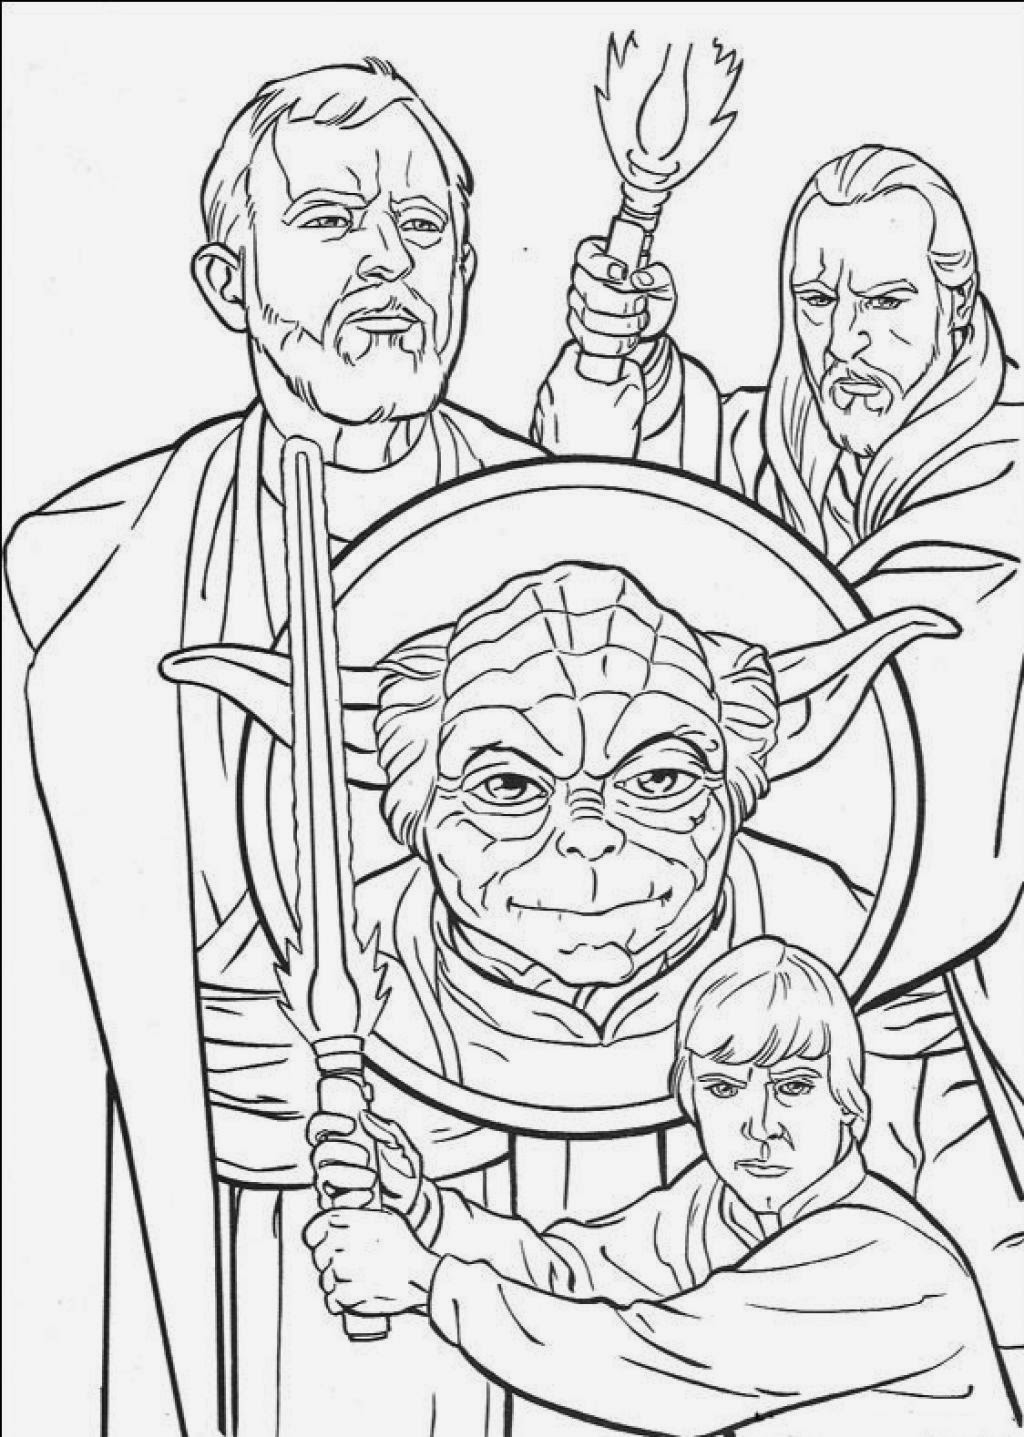 star wars pictures to color star wars printable coloring pages hubpages pictures to color wars star